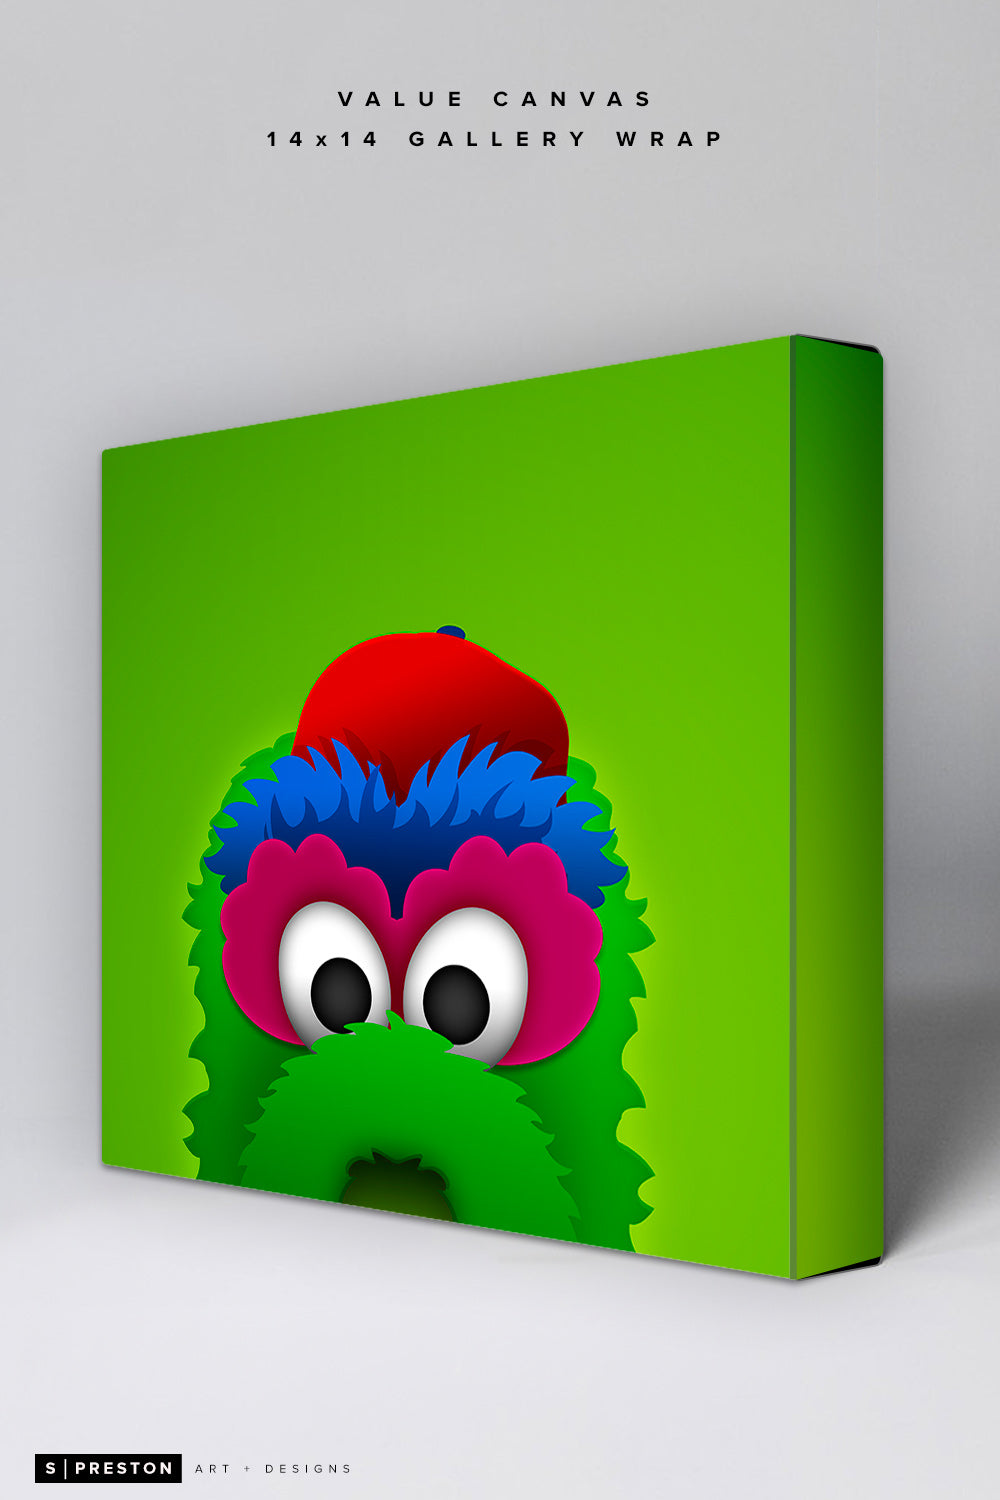 Minimalist Phillie Phanatic Value Canvas CLEARANCE